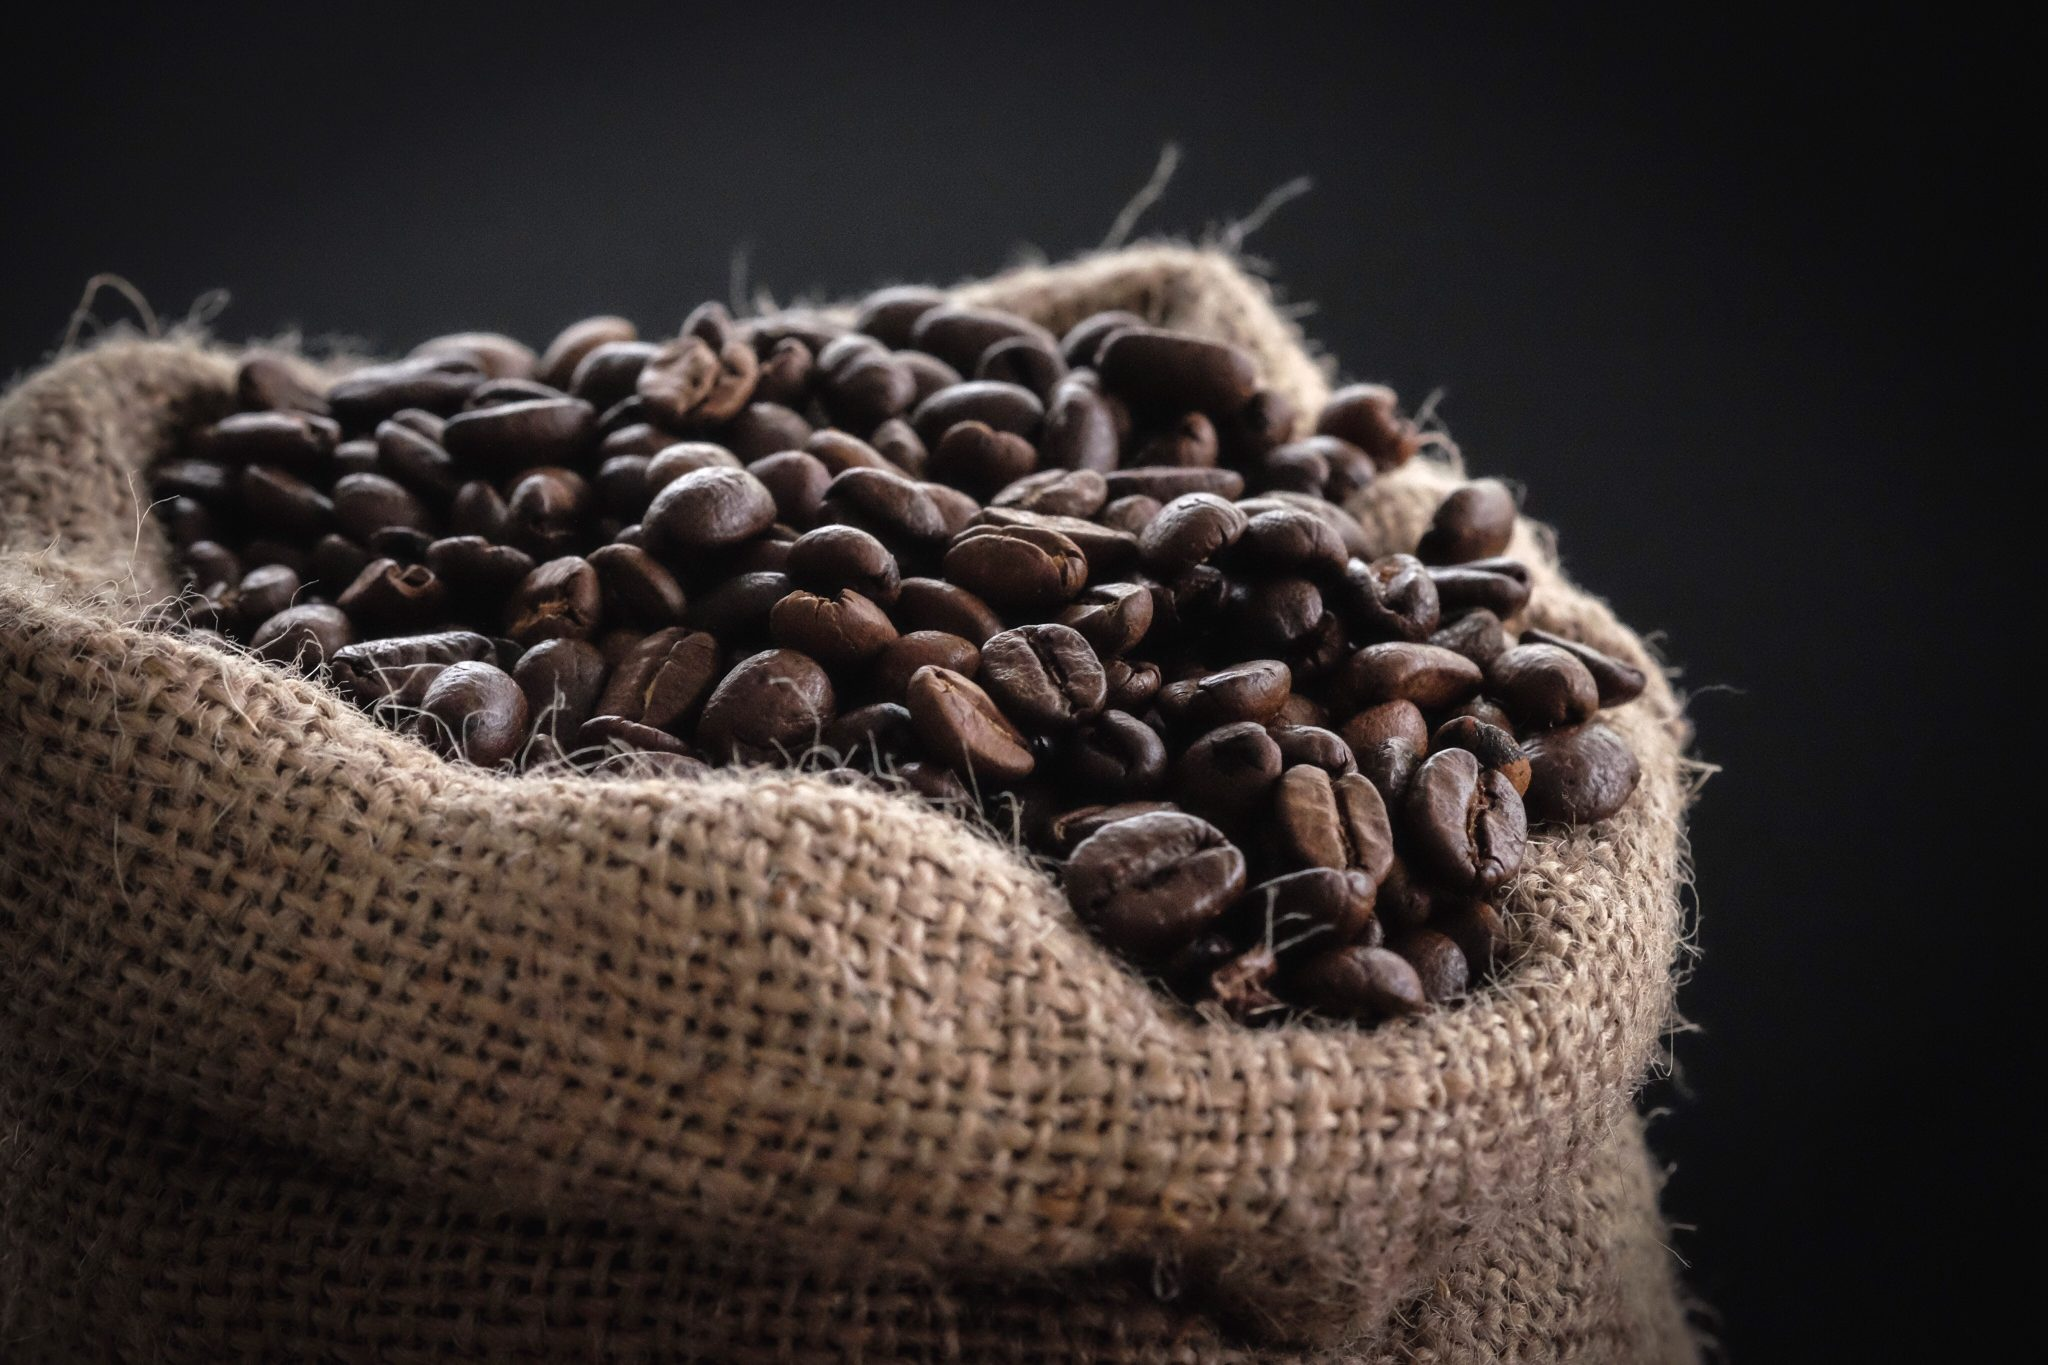 The Exciting Adventures of the Humble Fair Trade Coffee Bean at https://lukeosaurusandme.co.uk